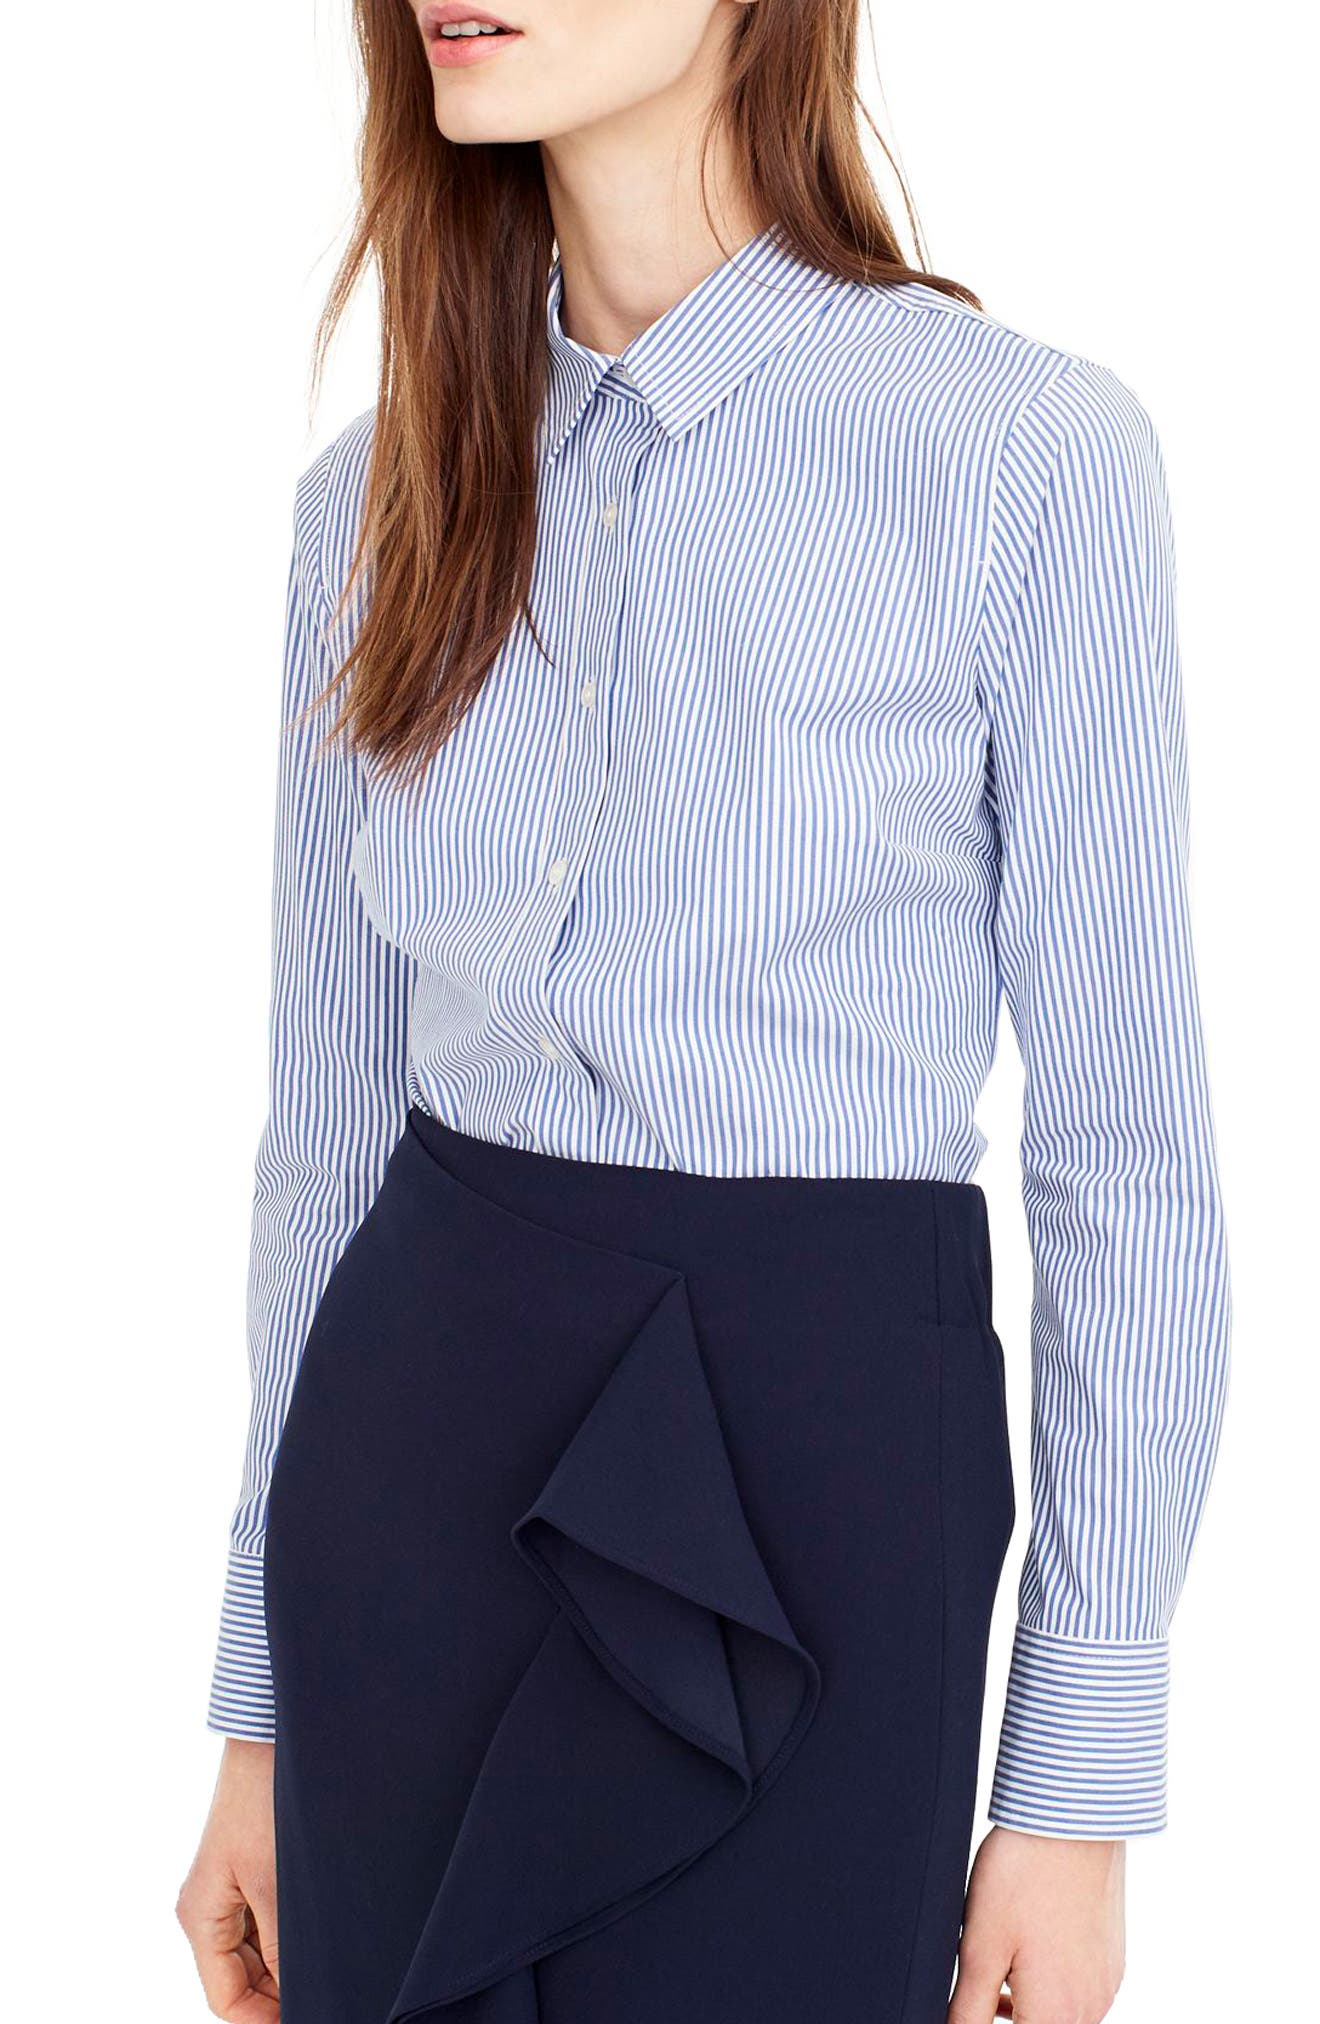 J.Crew Classic Stripe Stretch Perfect Cotton Shirt,                             Main thumbnail 1, color,                             French Blue